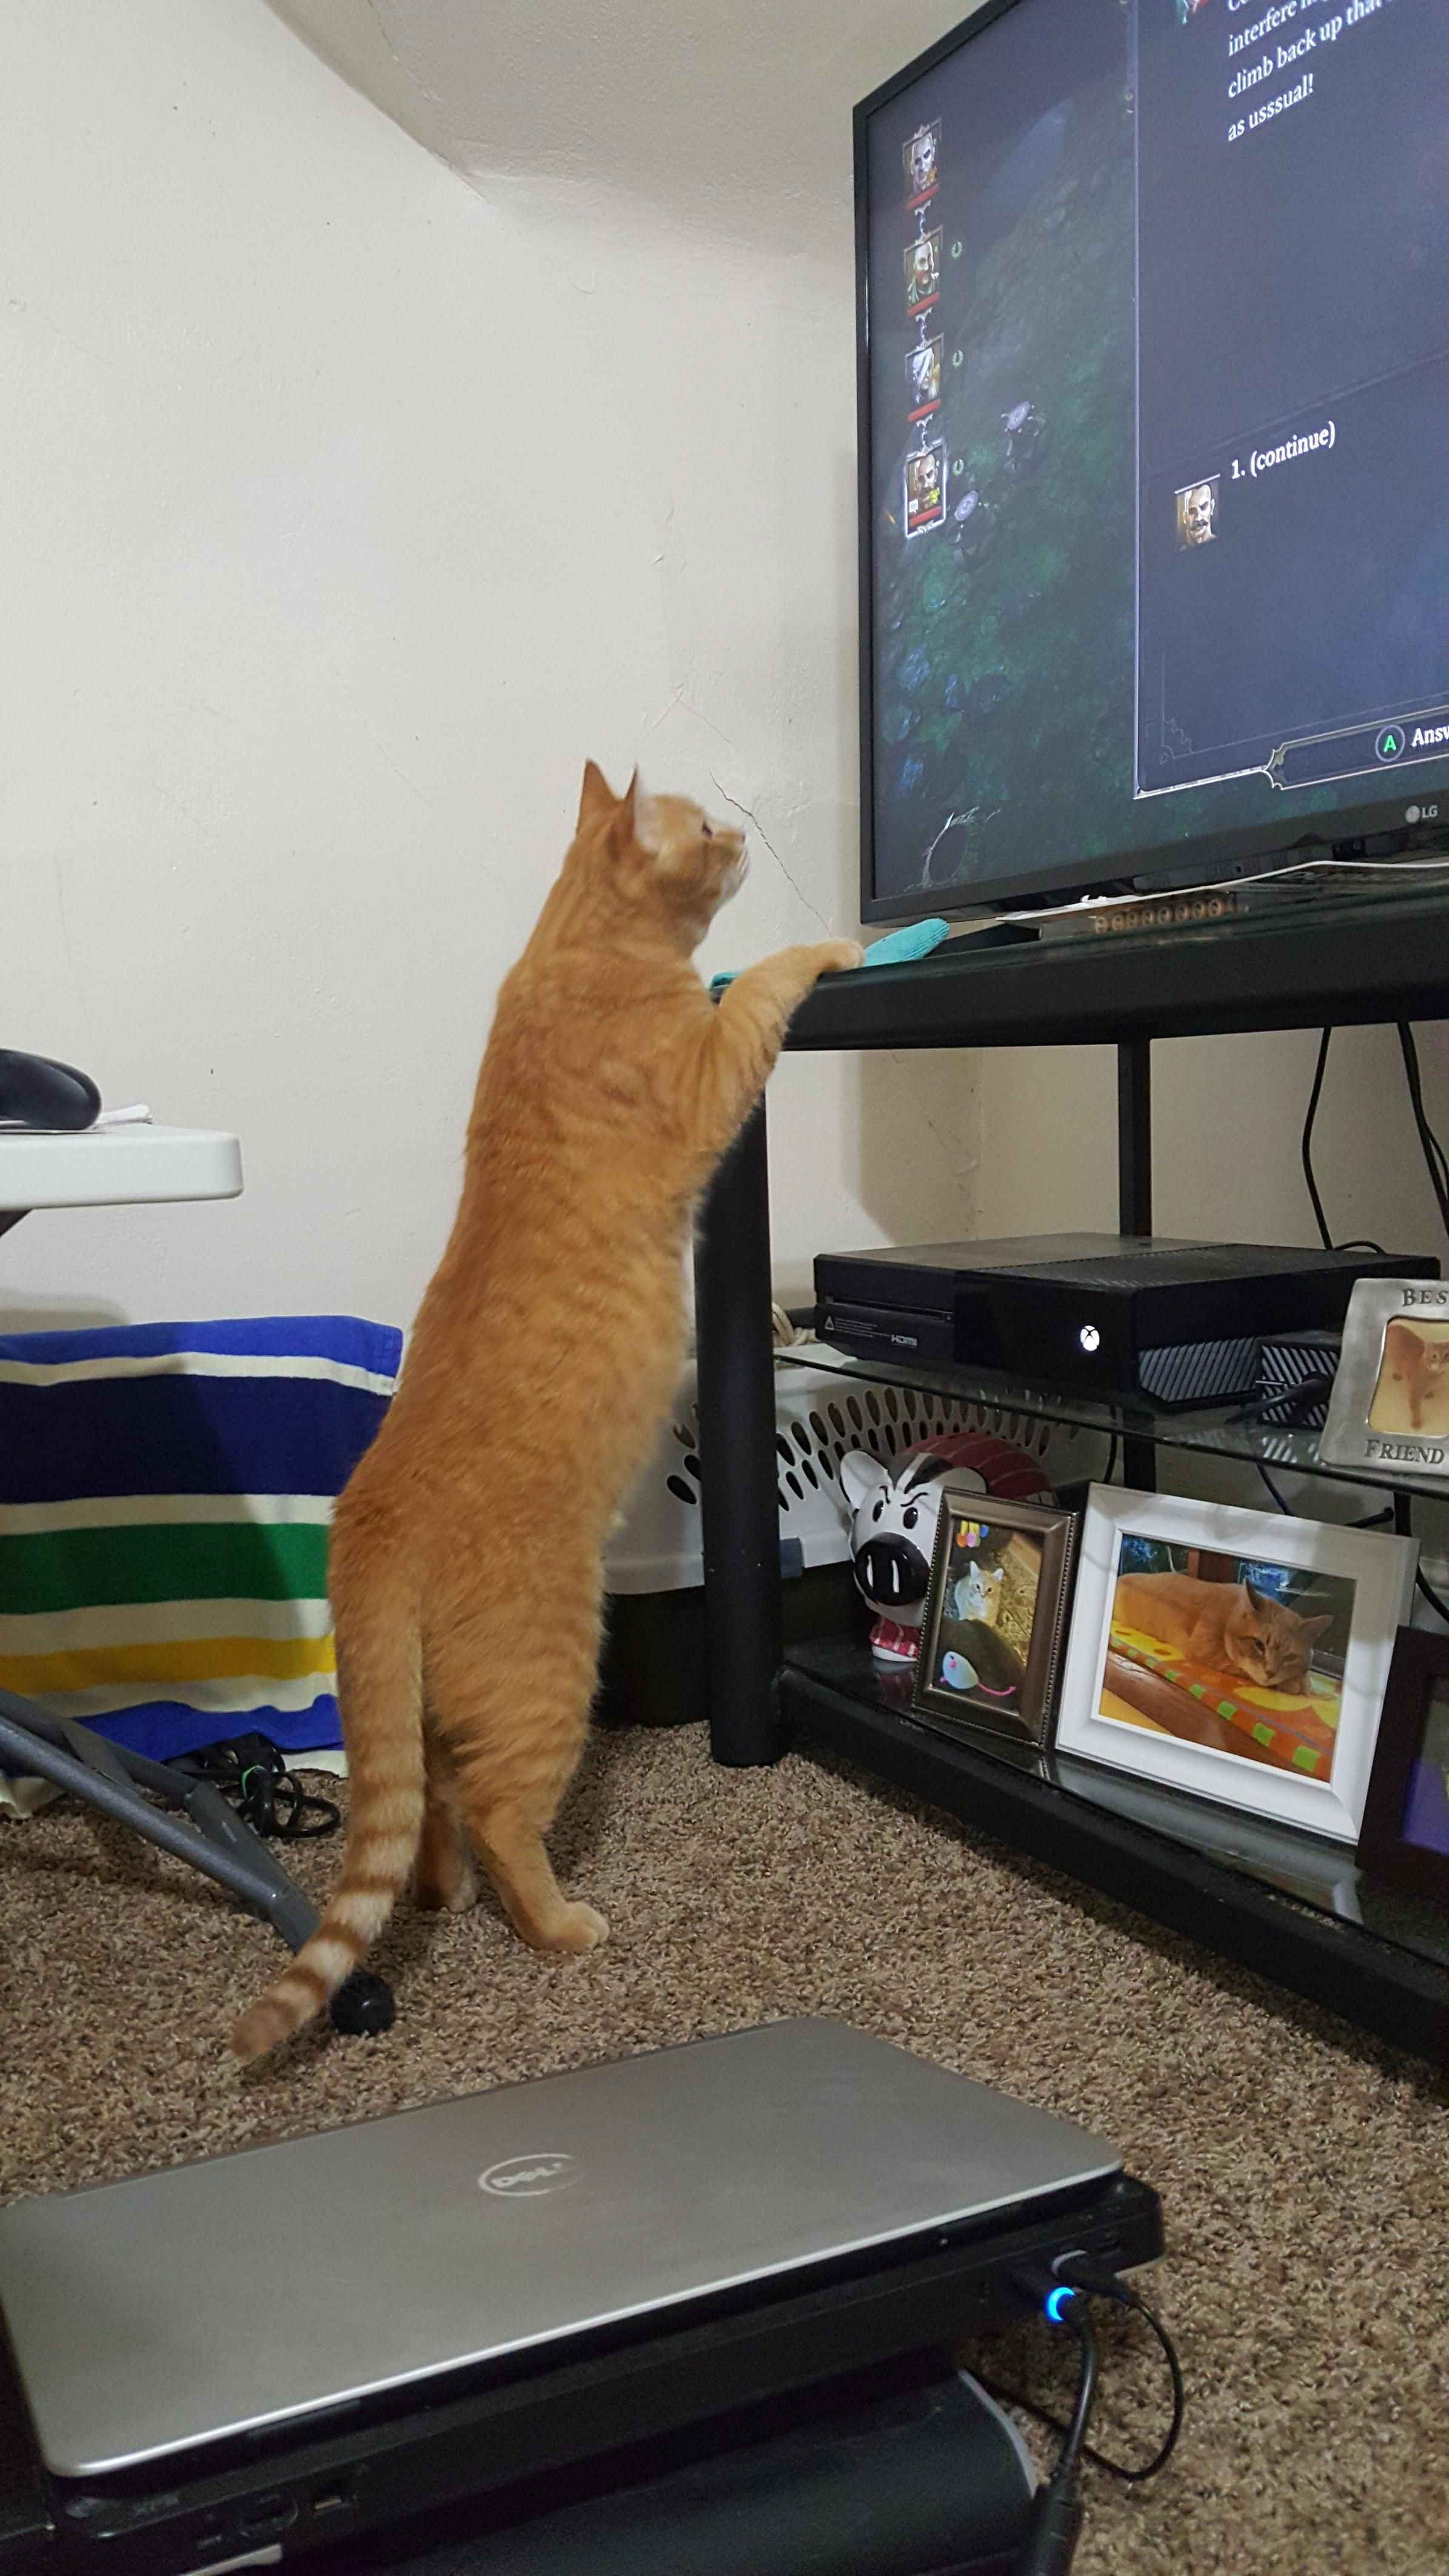 My cat loves watching the mice run around in divinity